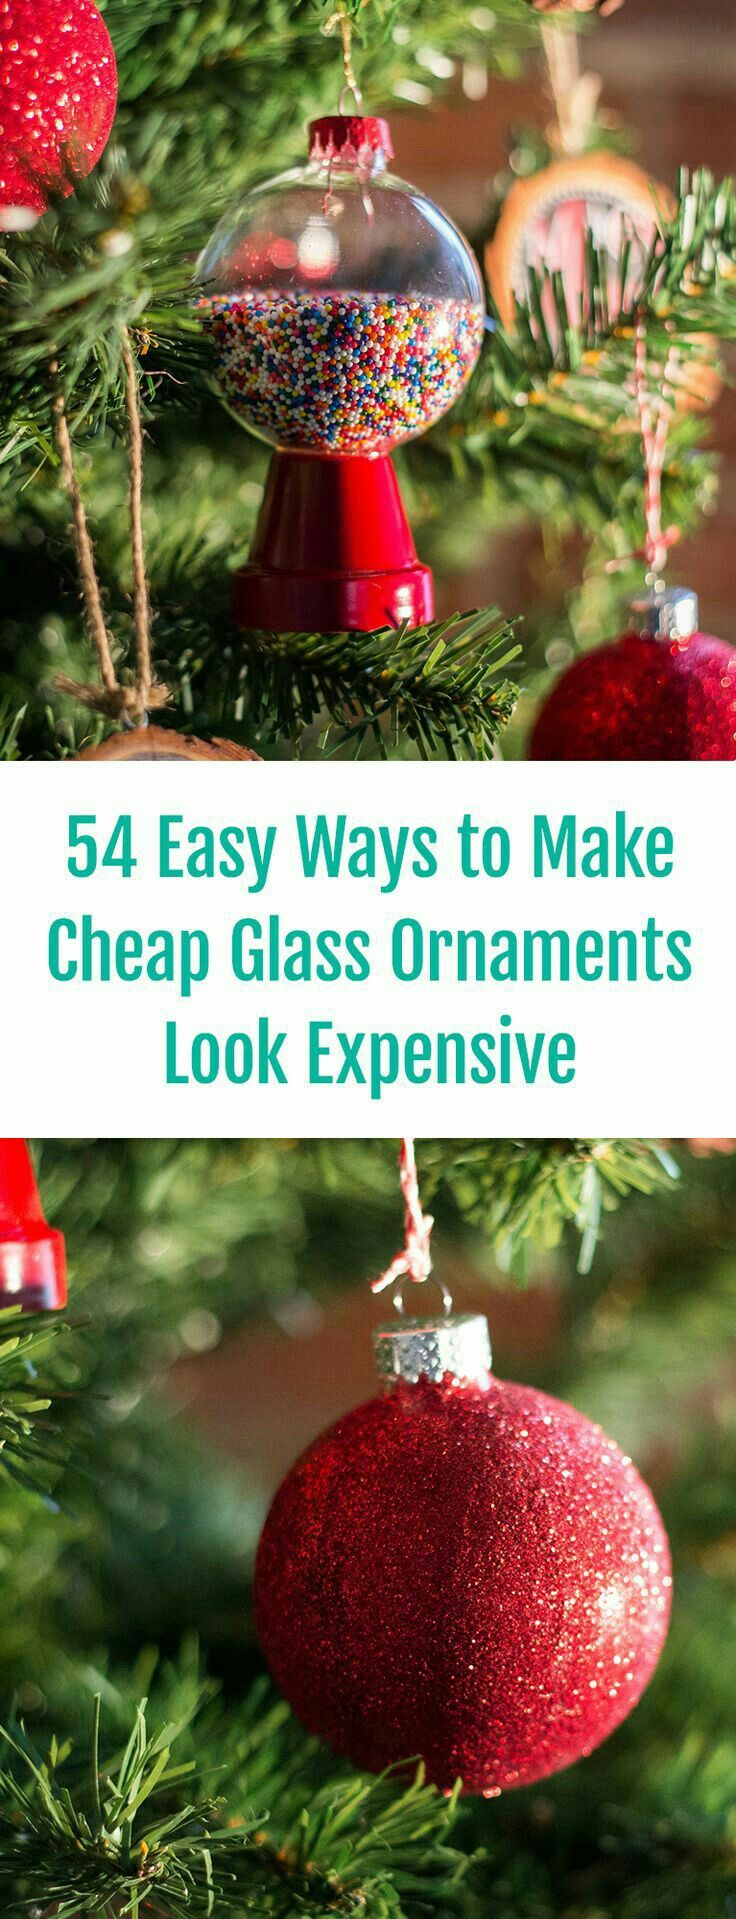 Easy ways to make cheap glass ornaments look expensive | Christmas ornaments, Creative christmas ...